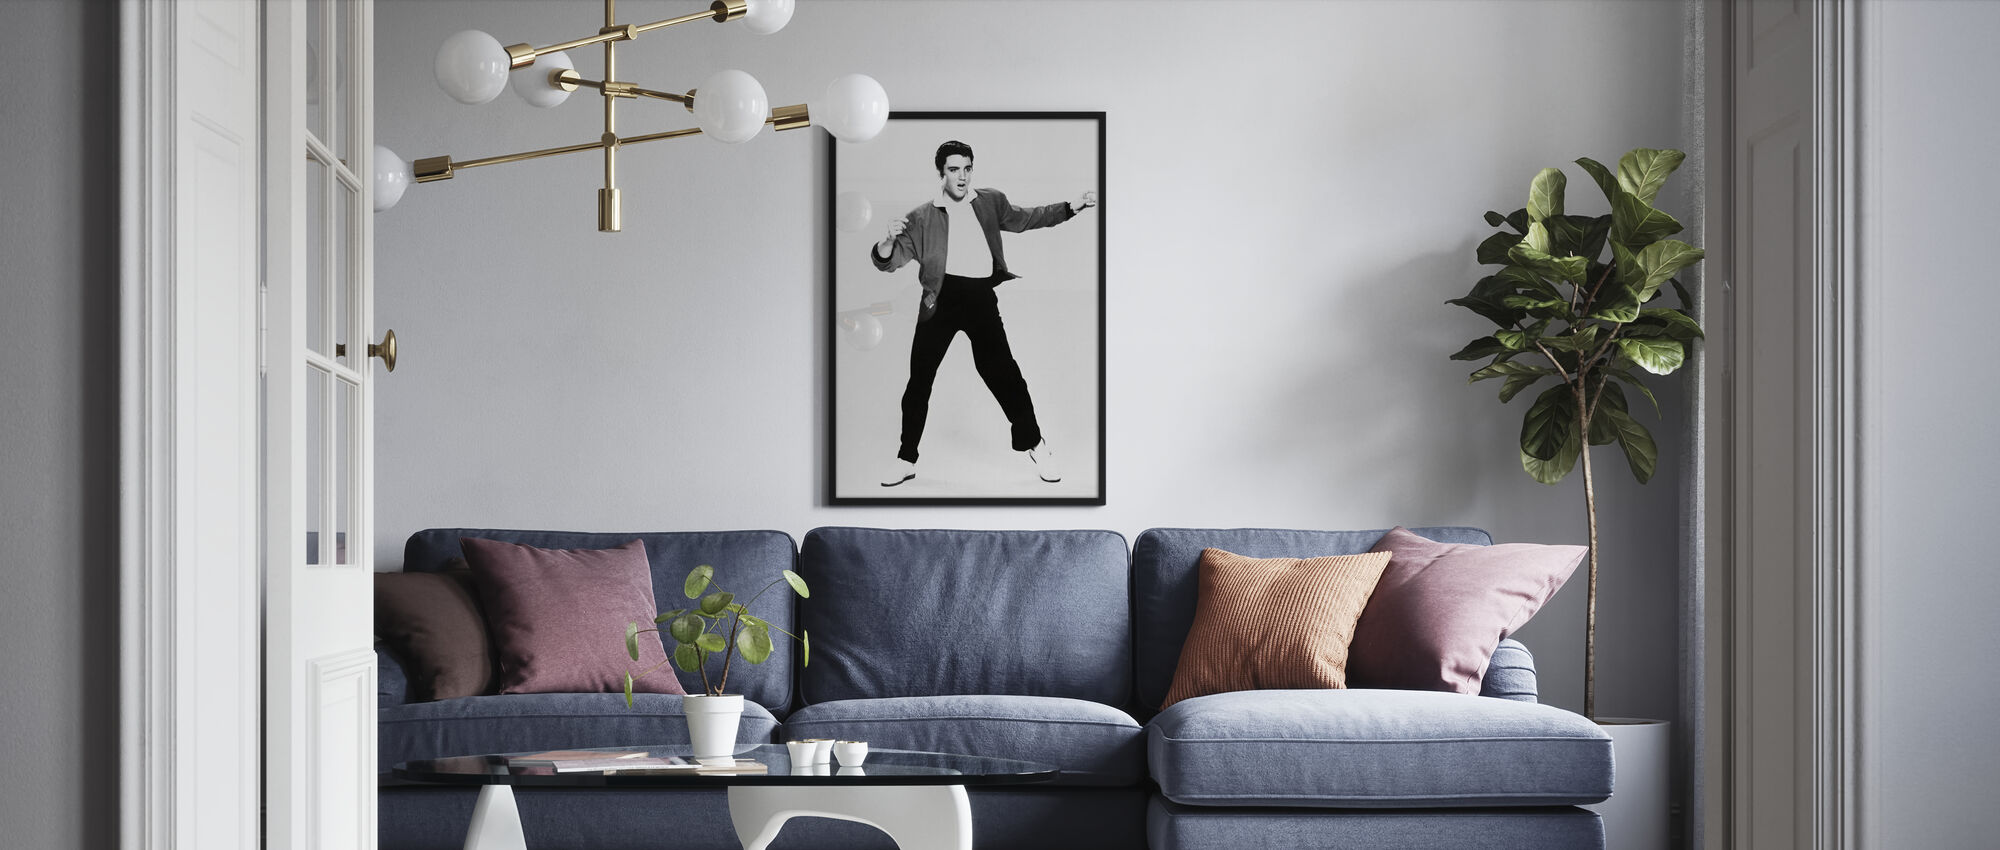 Elvis Presley in Jailhouse Rock - Framed print - Living Room